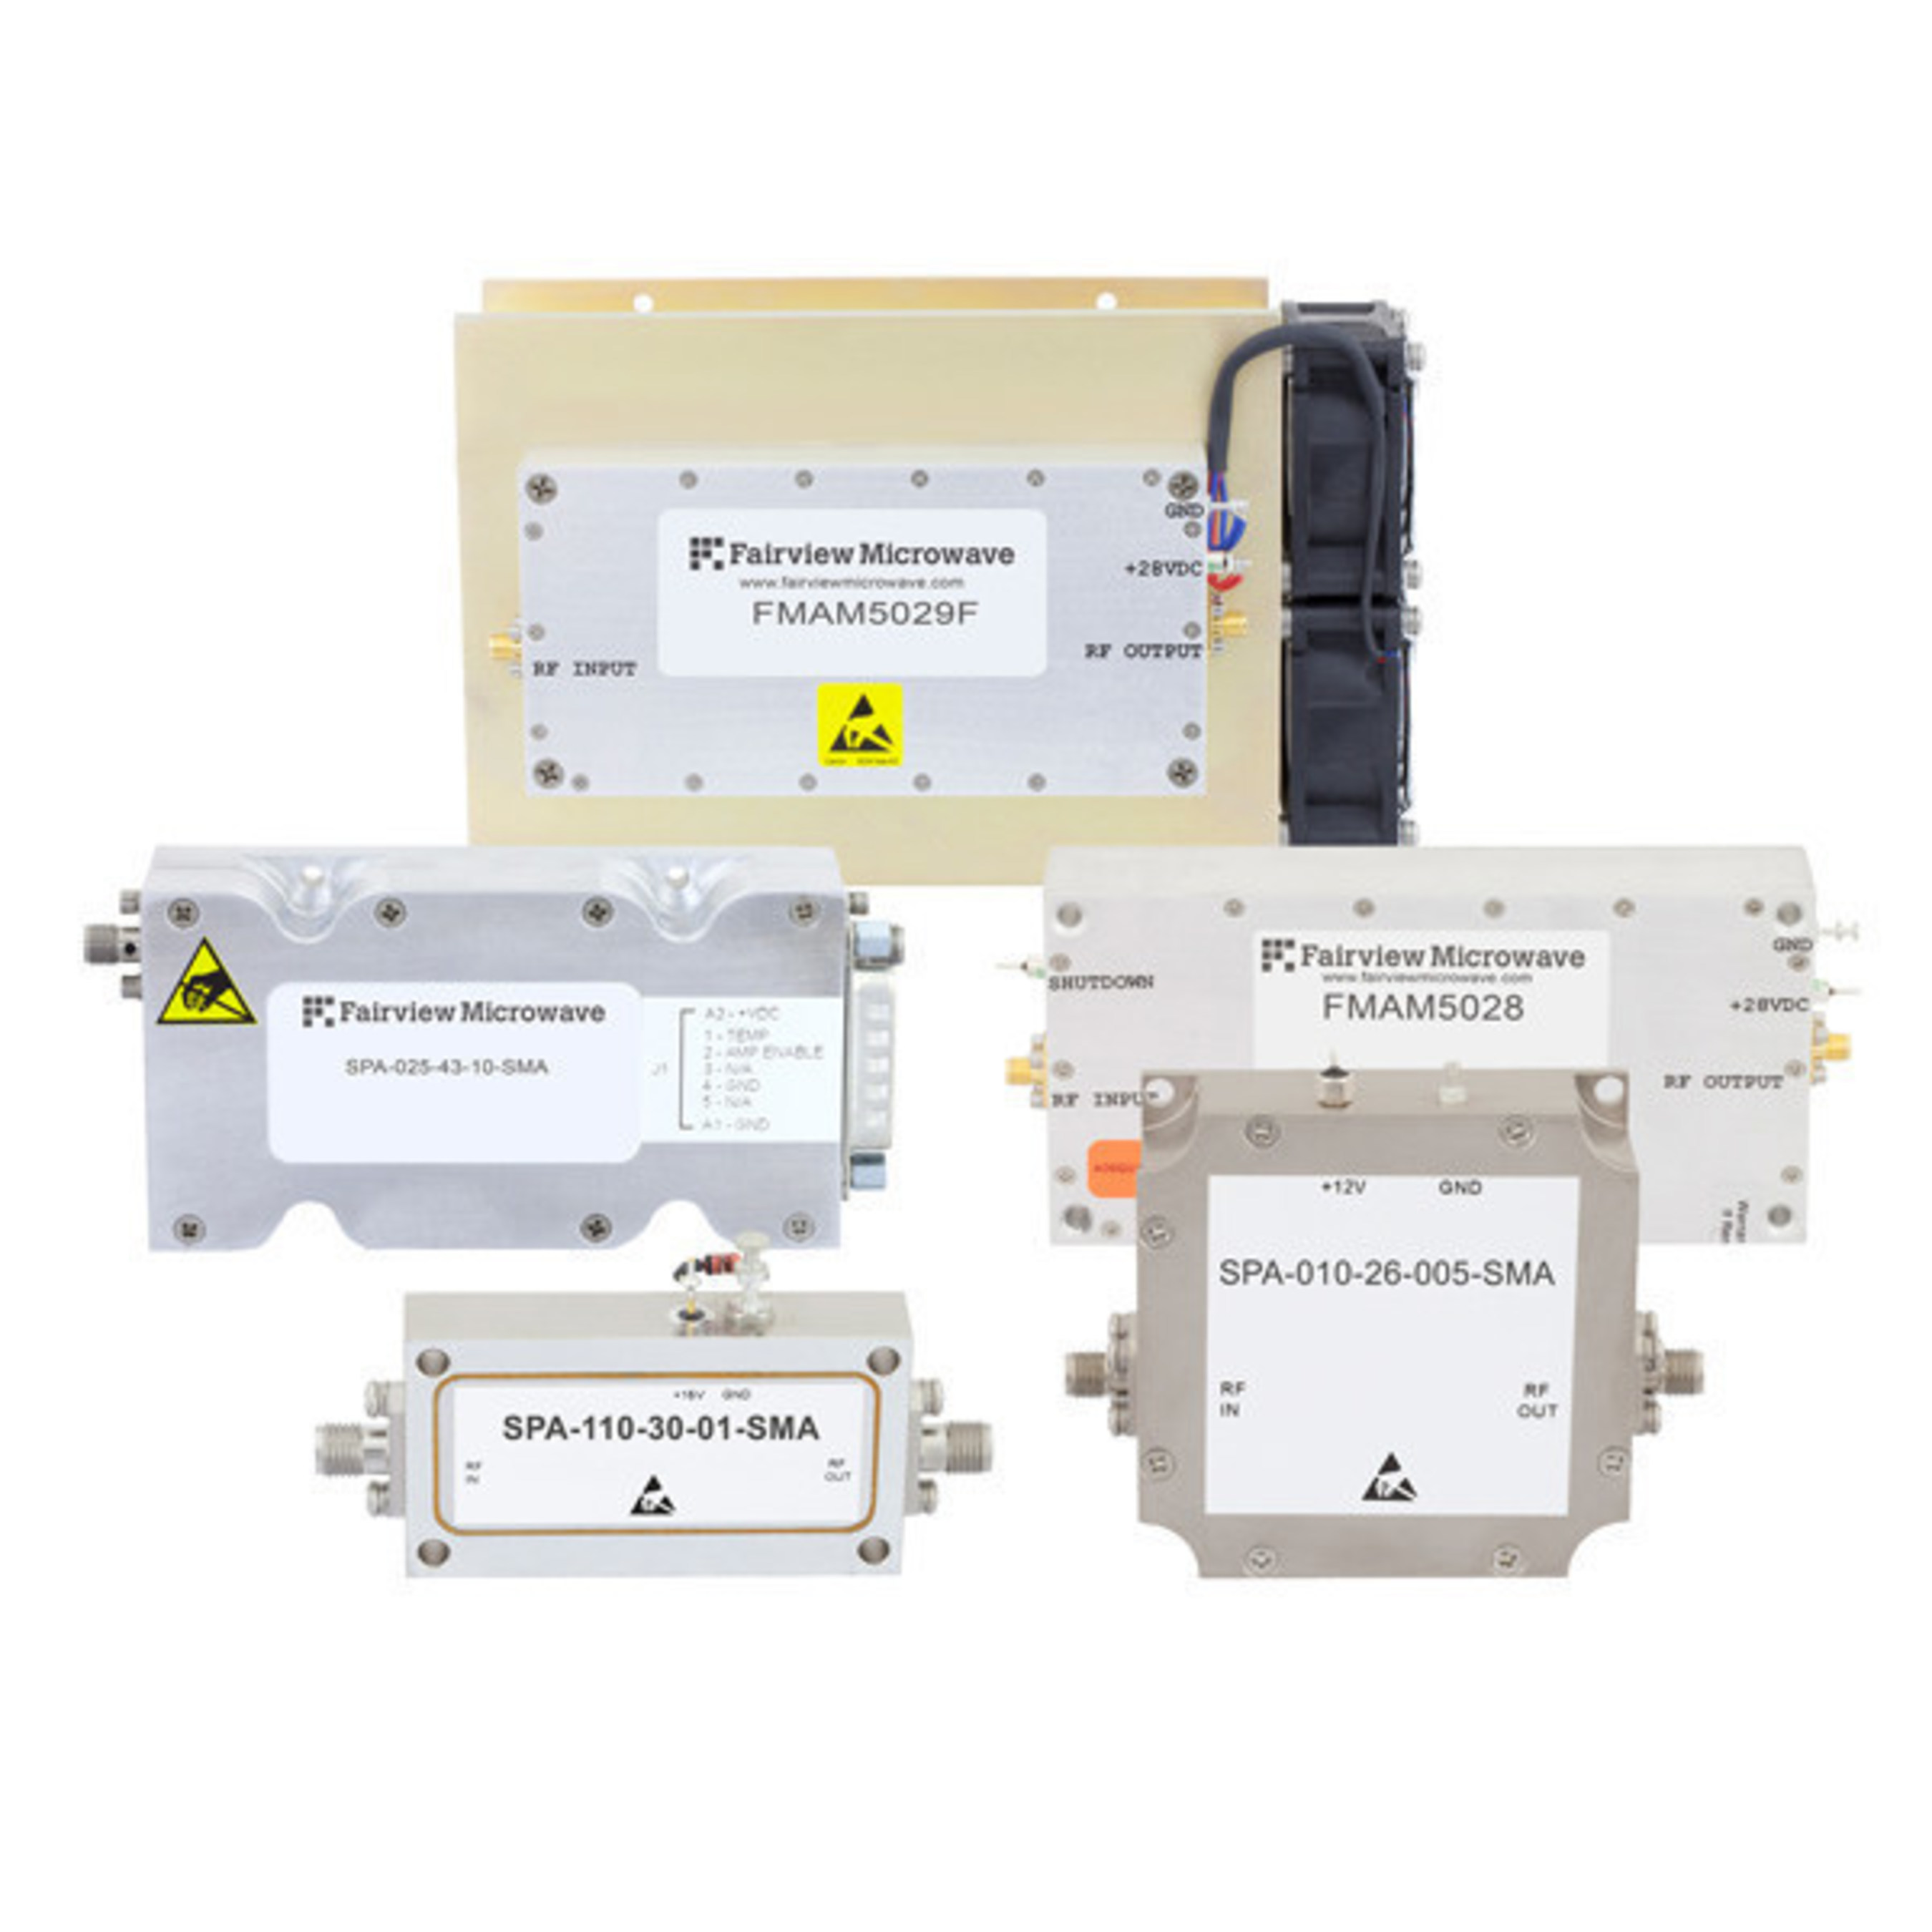 Fairview Microwave Debuts a Complete Family of High Reliability RF & Microwave Power Amplifiers